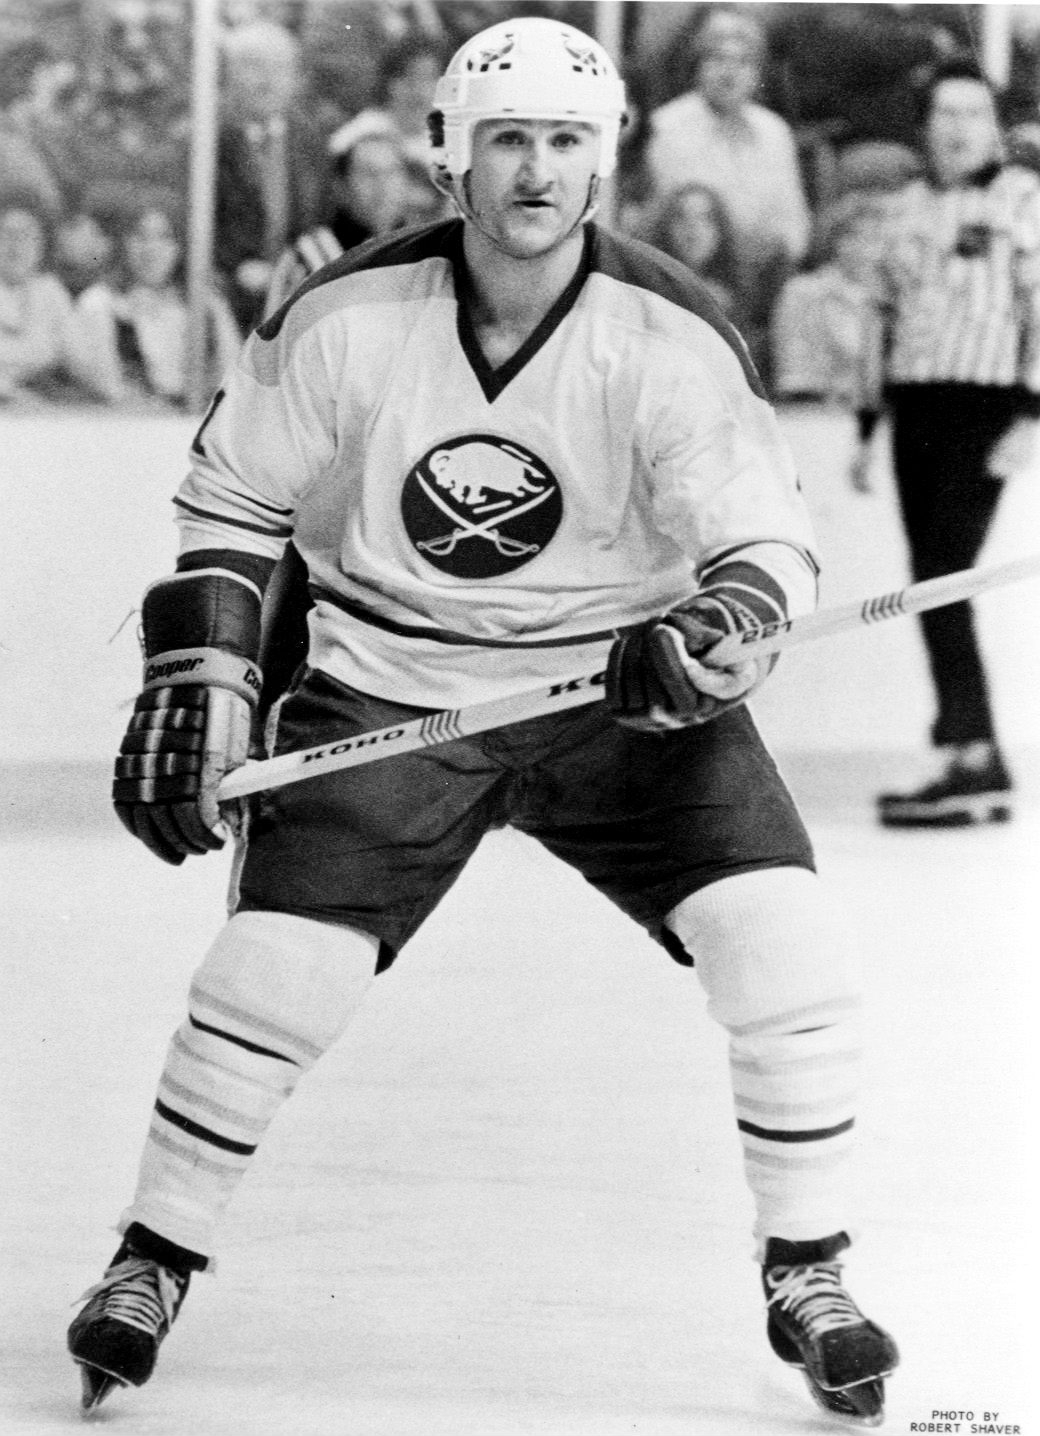 Gilbert Perreault was the first ever pick by the Buffalo Sabres and is still the best draft-day selection by the franchise. (Buffalo News file photo)